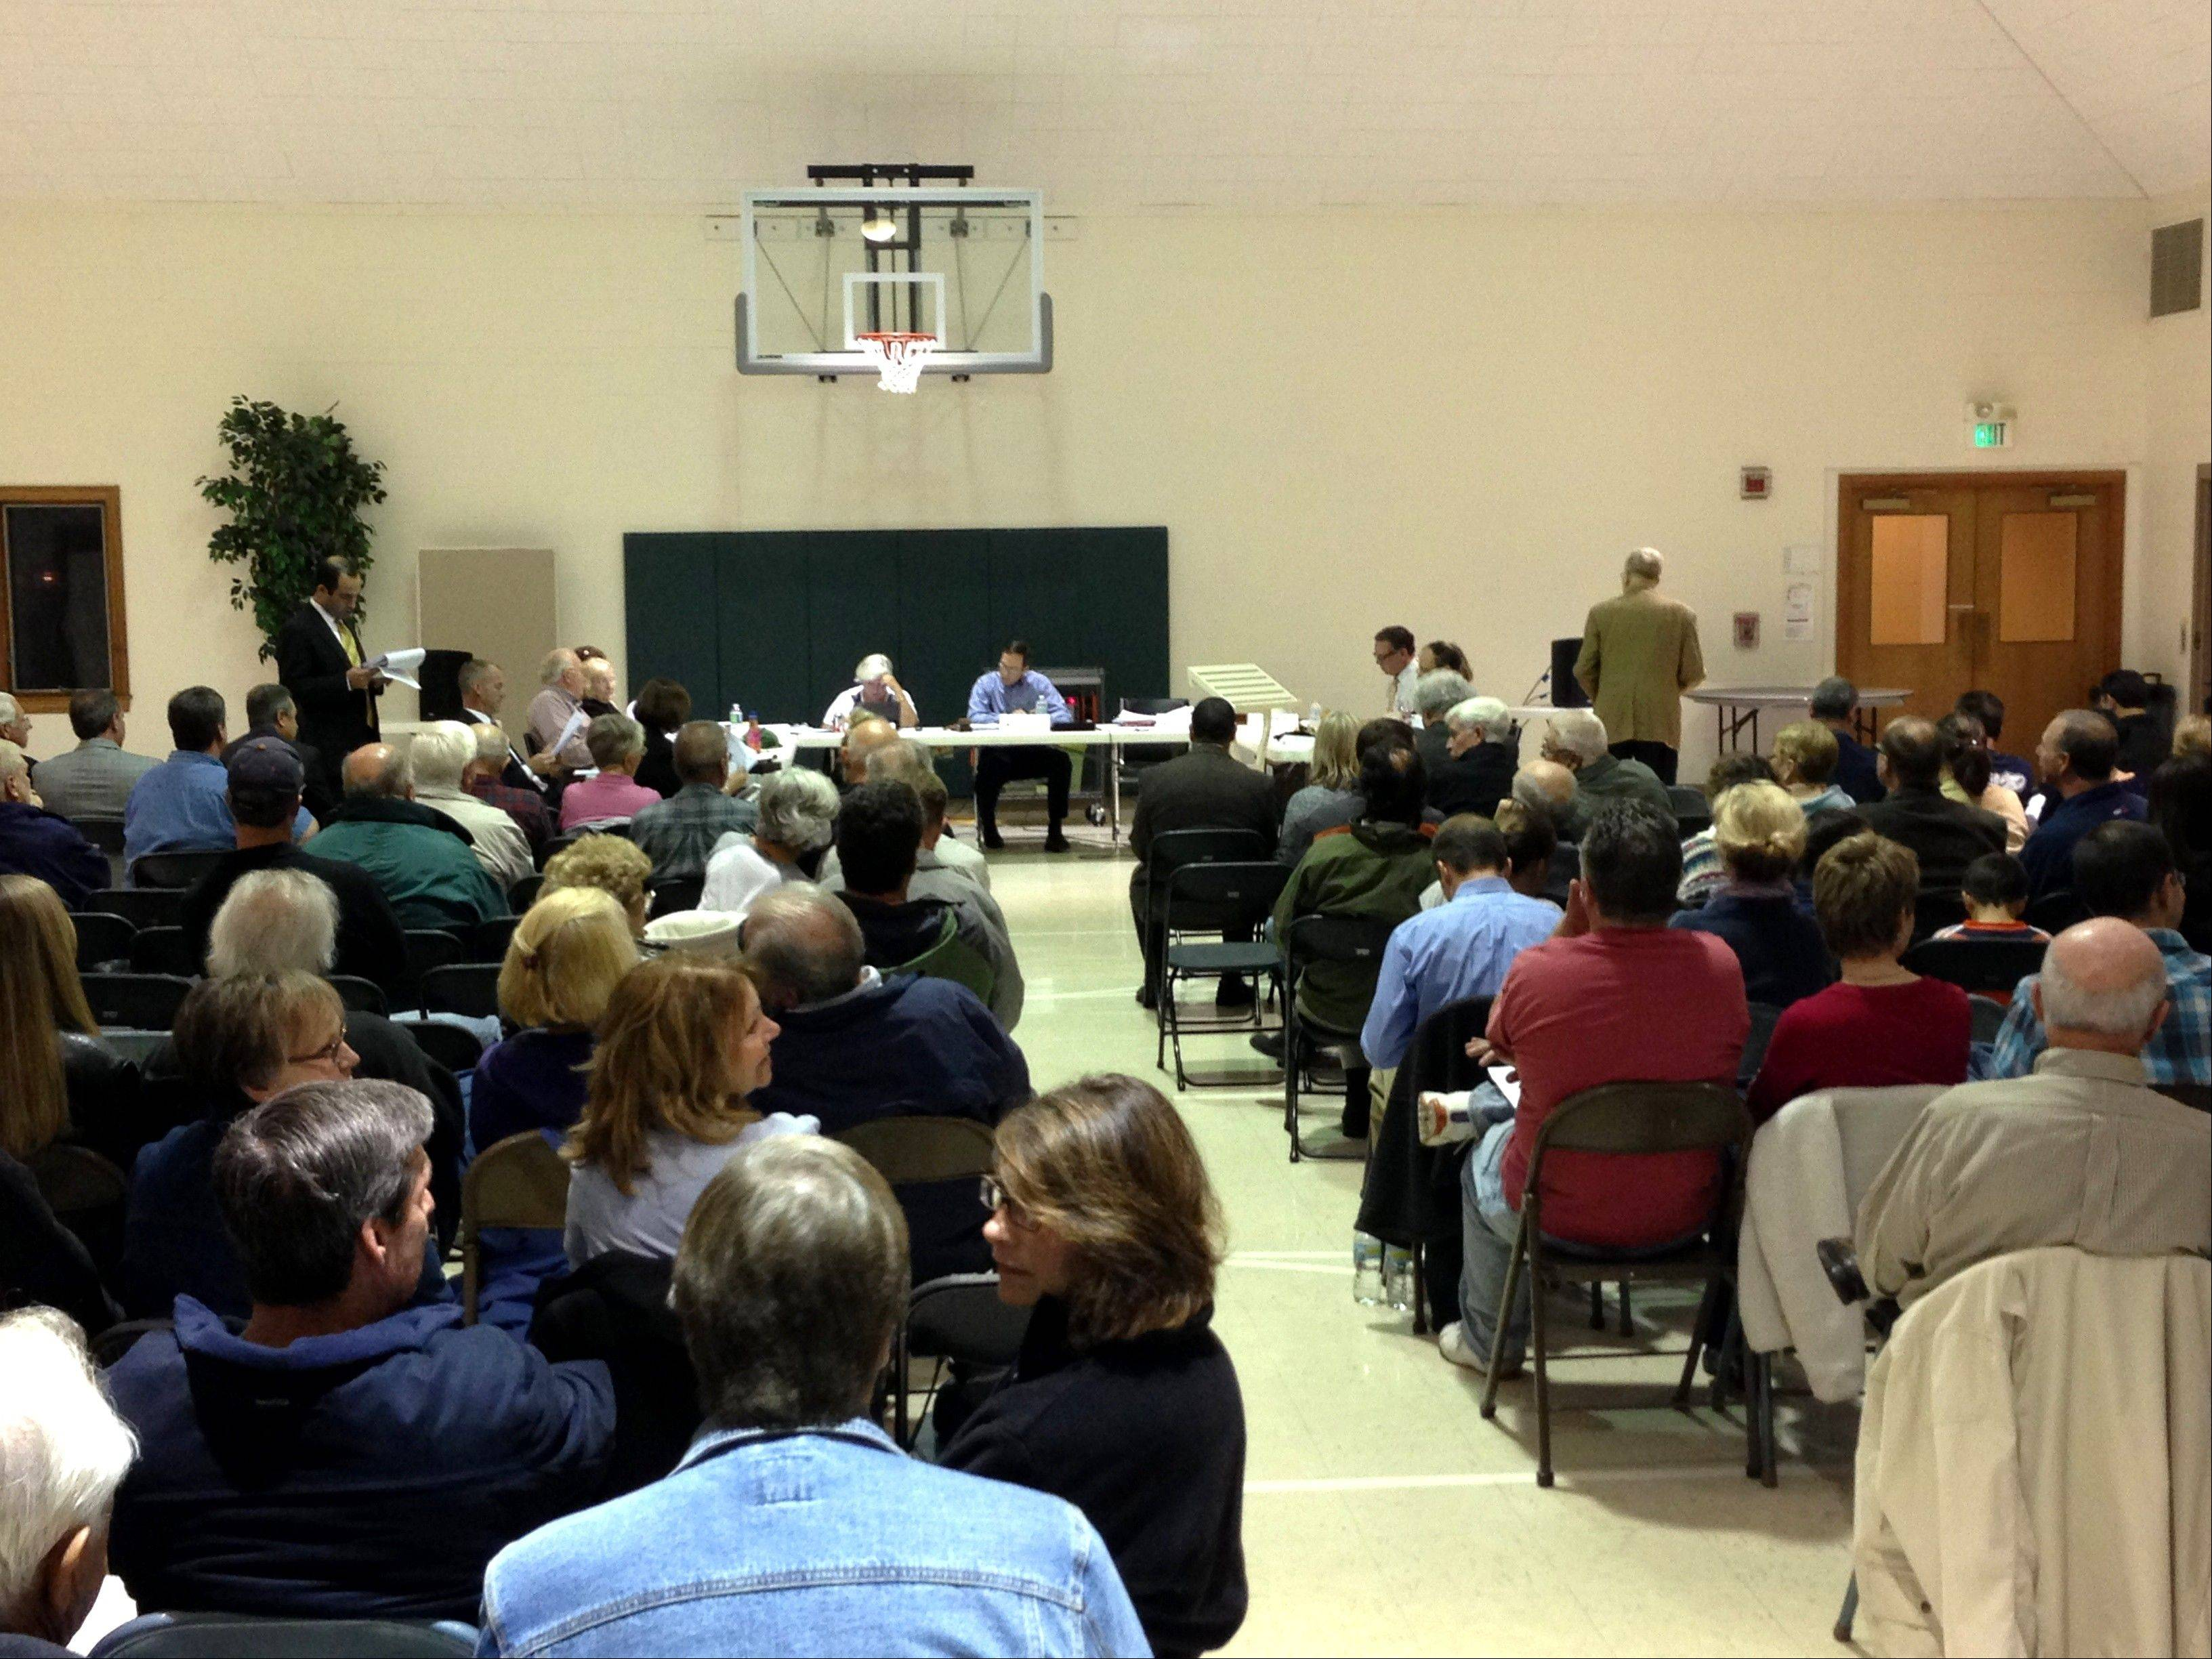 Campton Hills rehab center plan draws more public ire